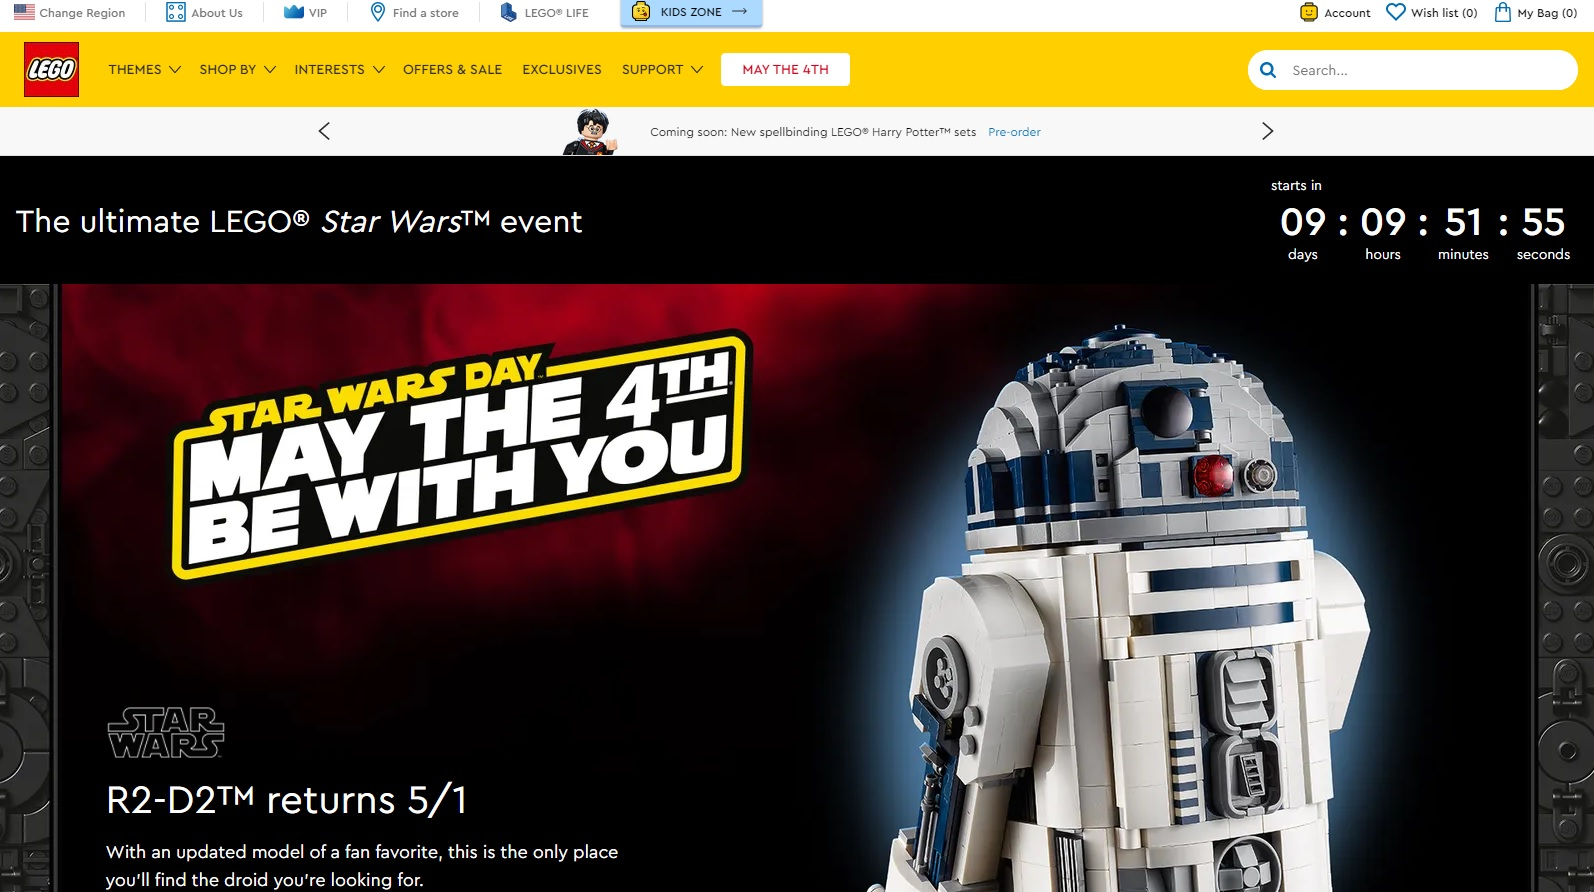 May The 4th Be With You May 2021 Lego Star Wars Days Promotions Offers Details Toys N Bricks